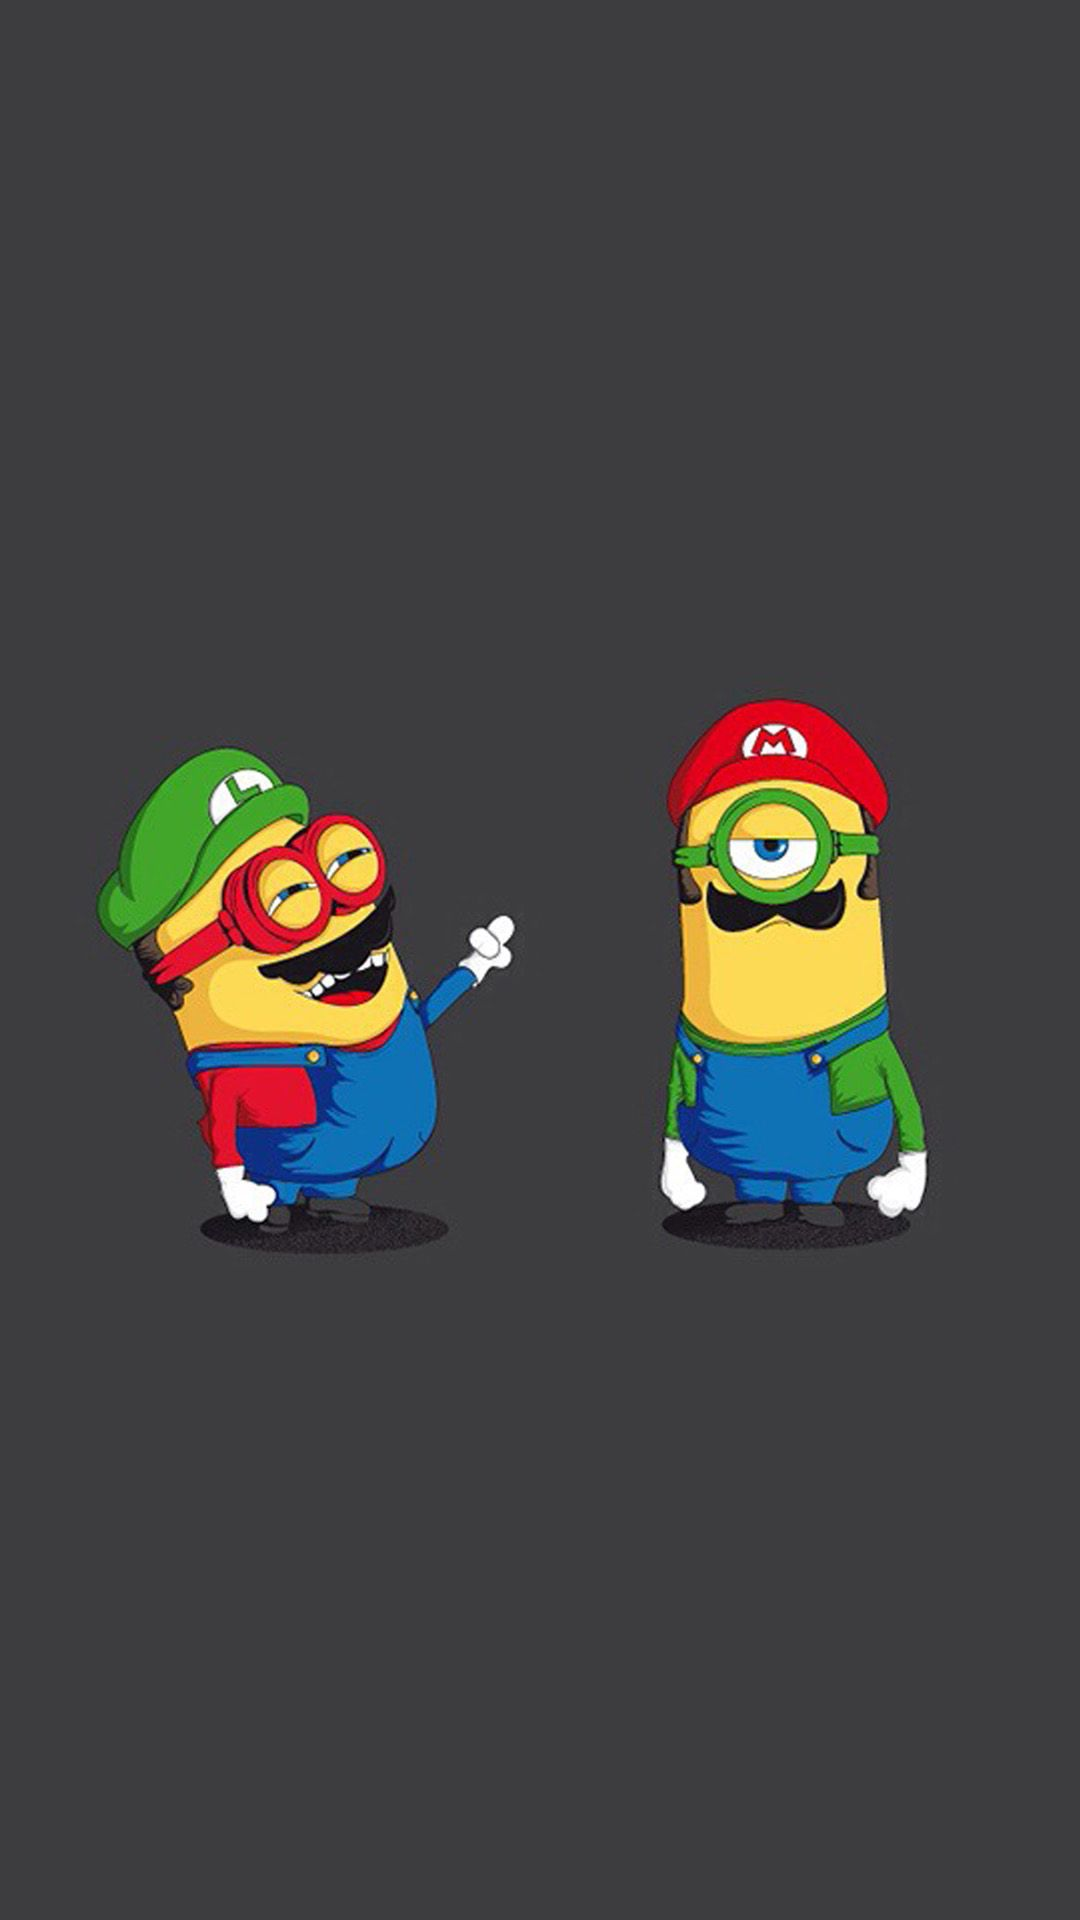 funny mario and luigi minions hd wallpaper iphone 6 plus | minion1